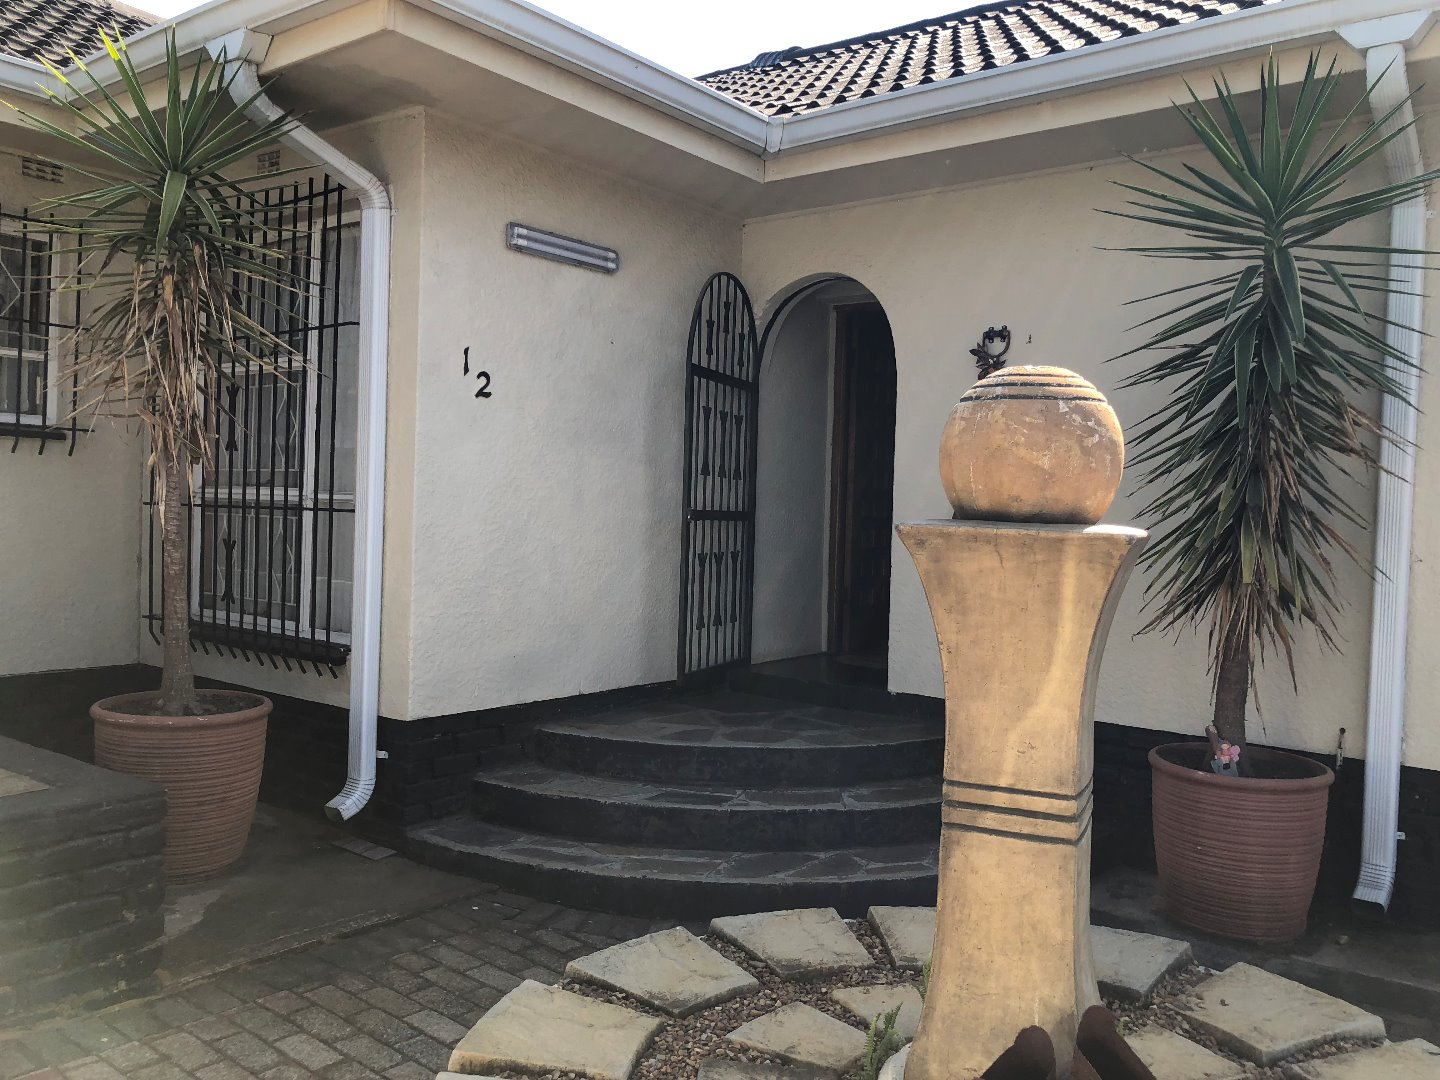 Randfontein, Helikonpark Property  | Houses For Sale Helikonpark, Helikonpark, House 4 bedrooms property for sale Price:1,200,000